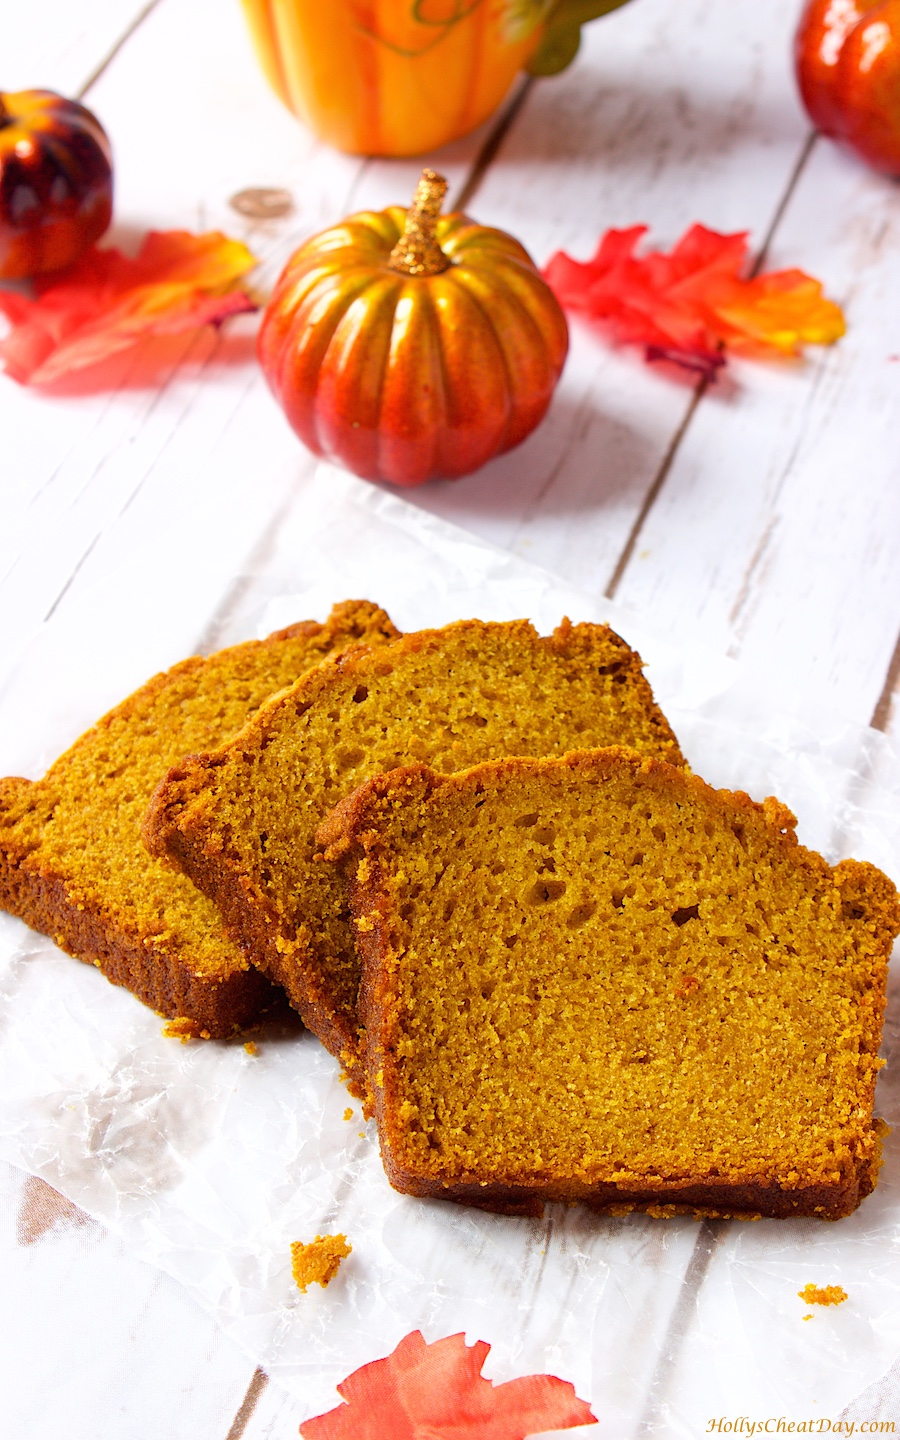 Pumpkin Gingerbread - HOLLY'S CHEAT DAY